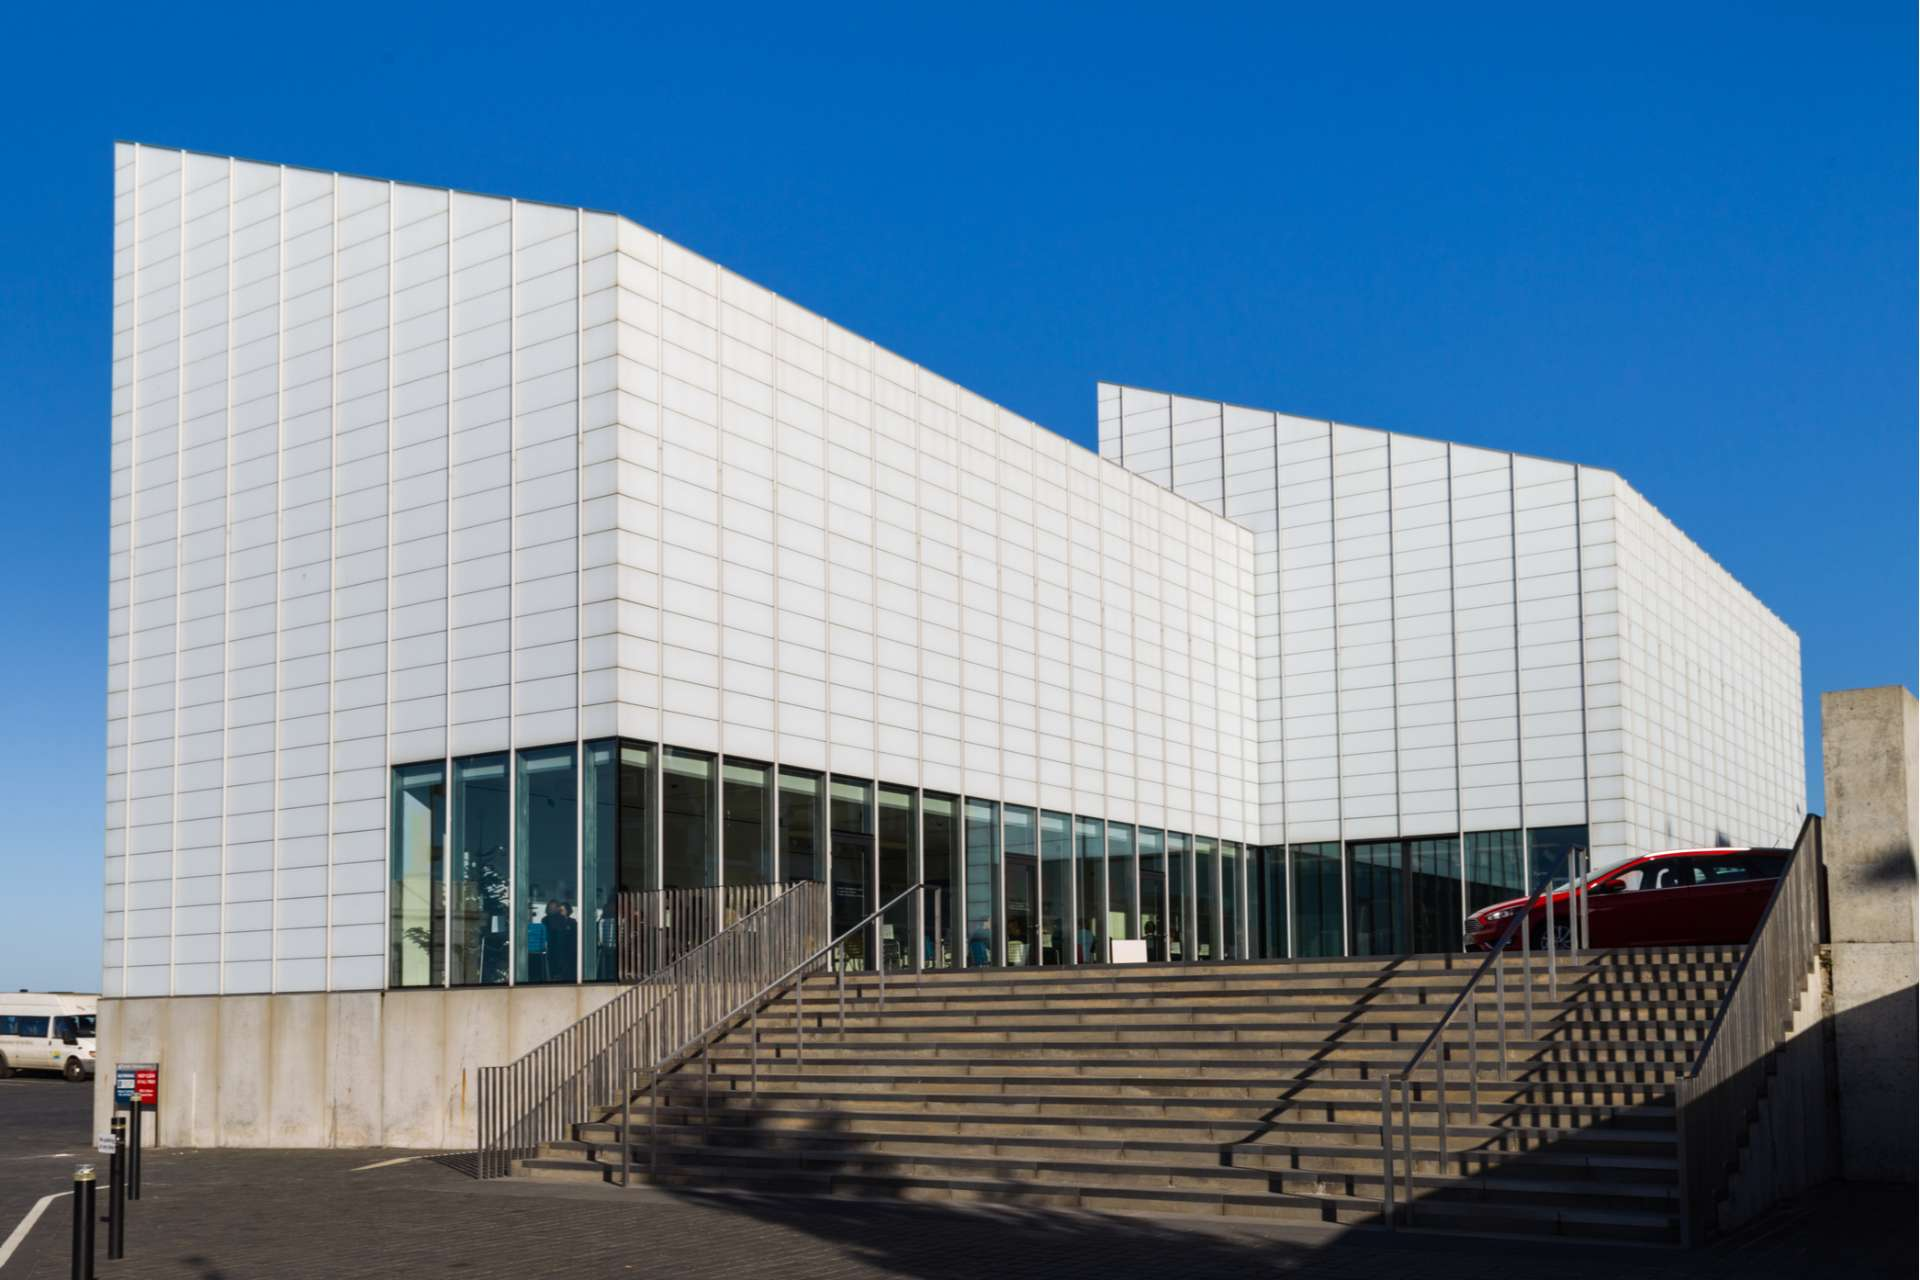 Picture of Turner Contemporary exterior